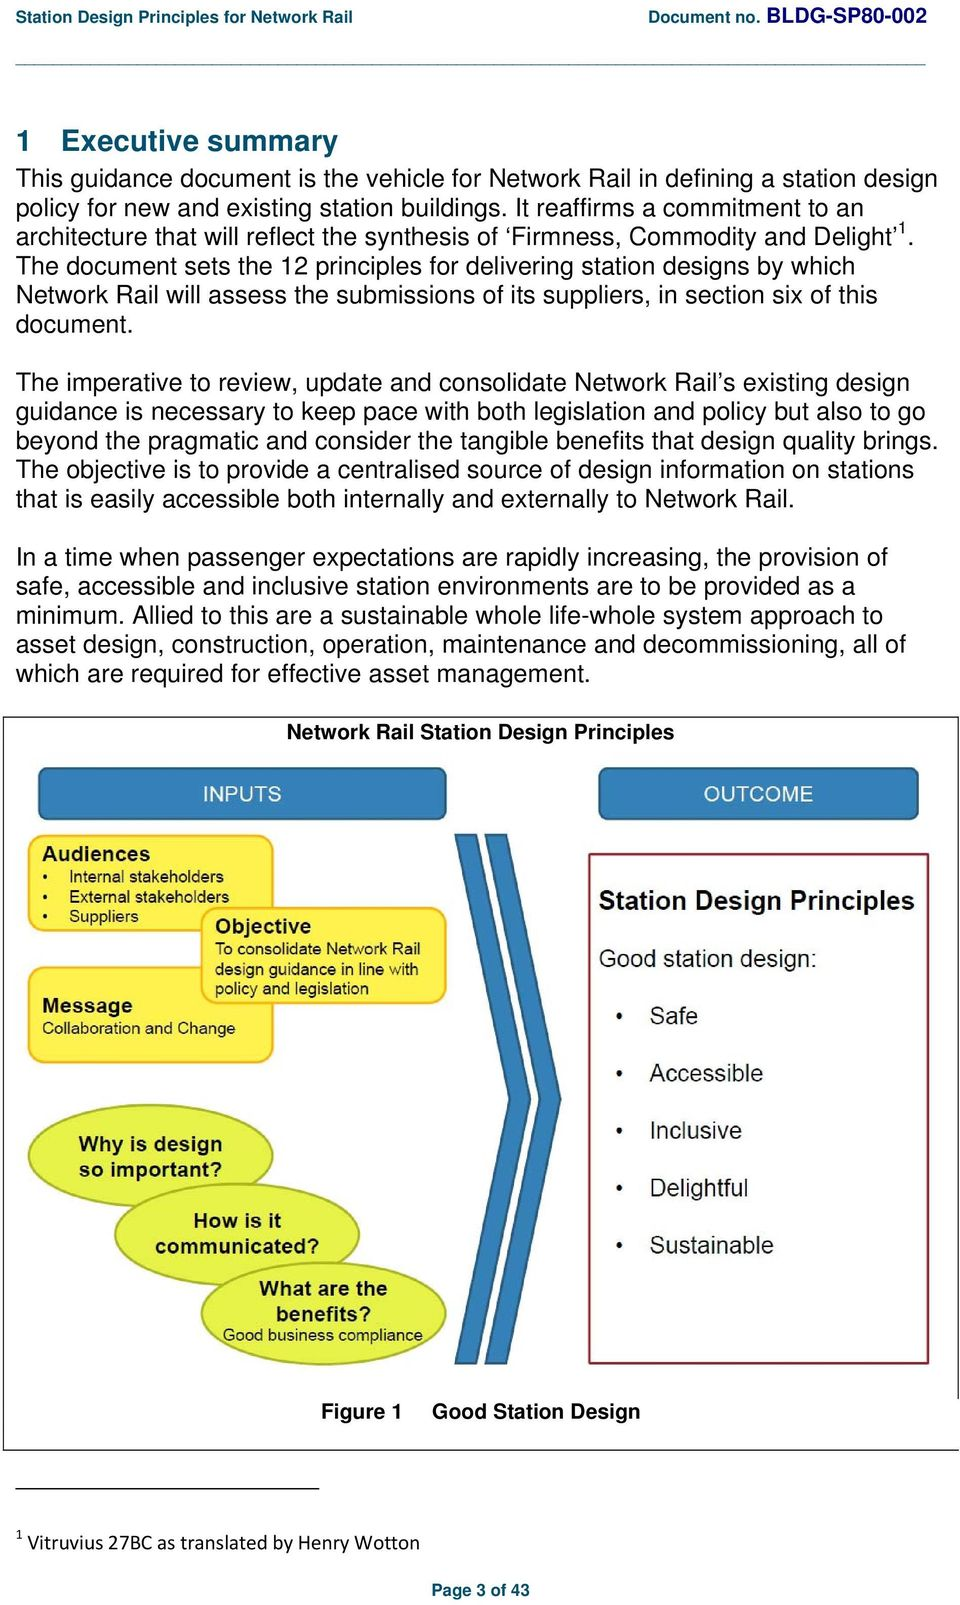 The document sets the 12 principles for delivering station designs by which Network Rail will assess the submissions of its suppliers, in section six of this document.